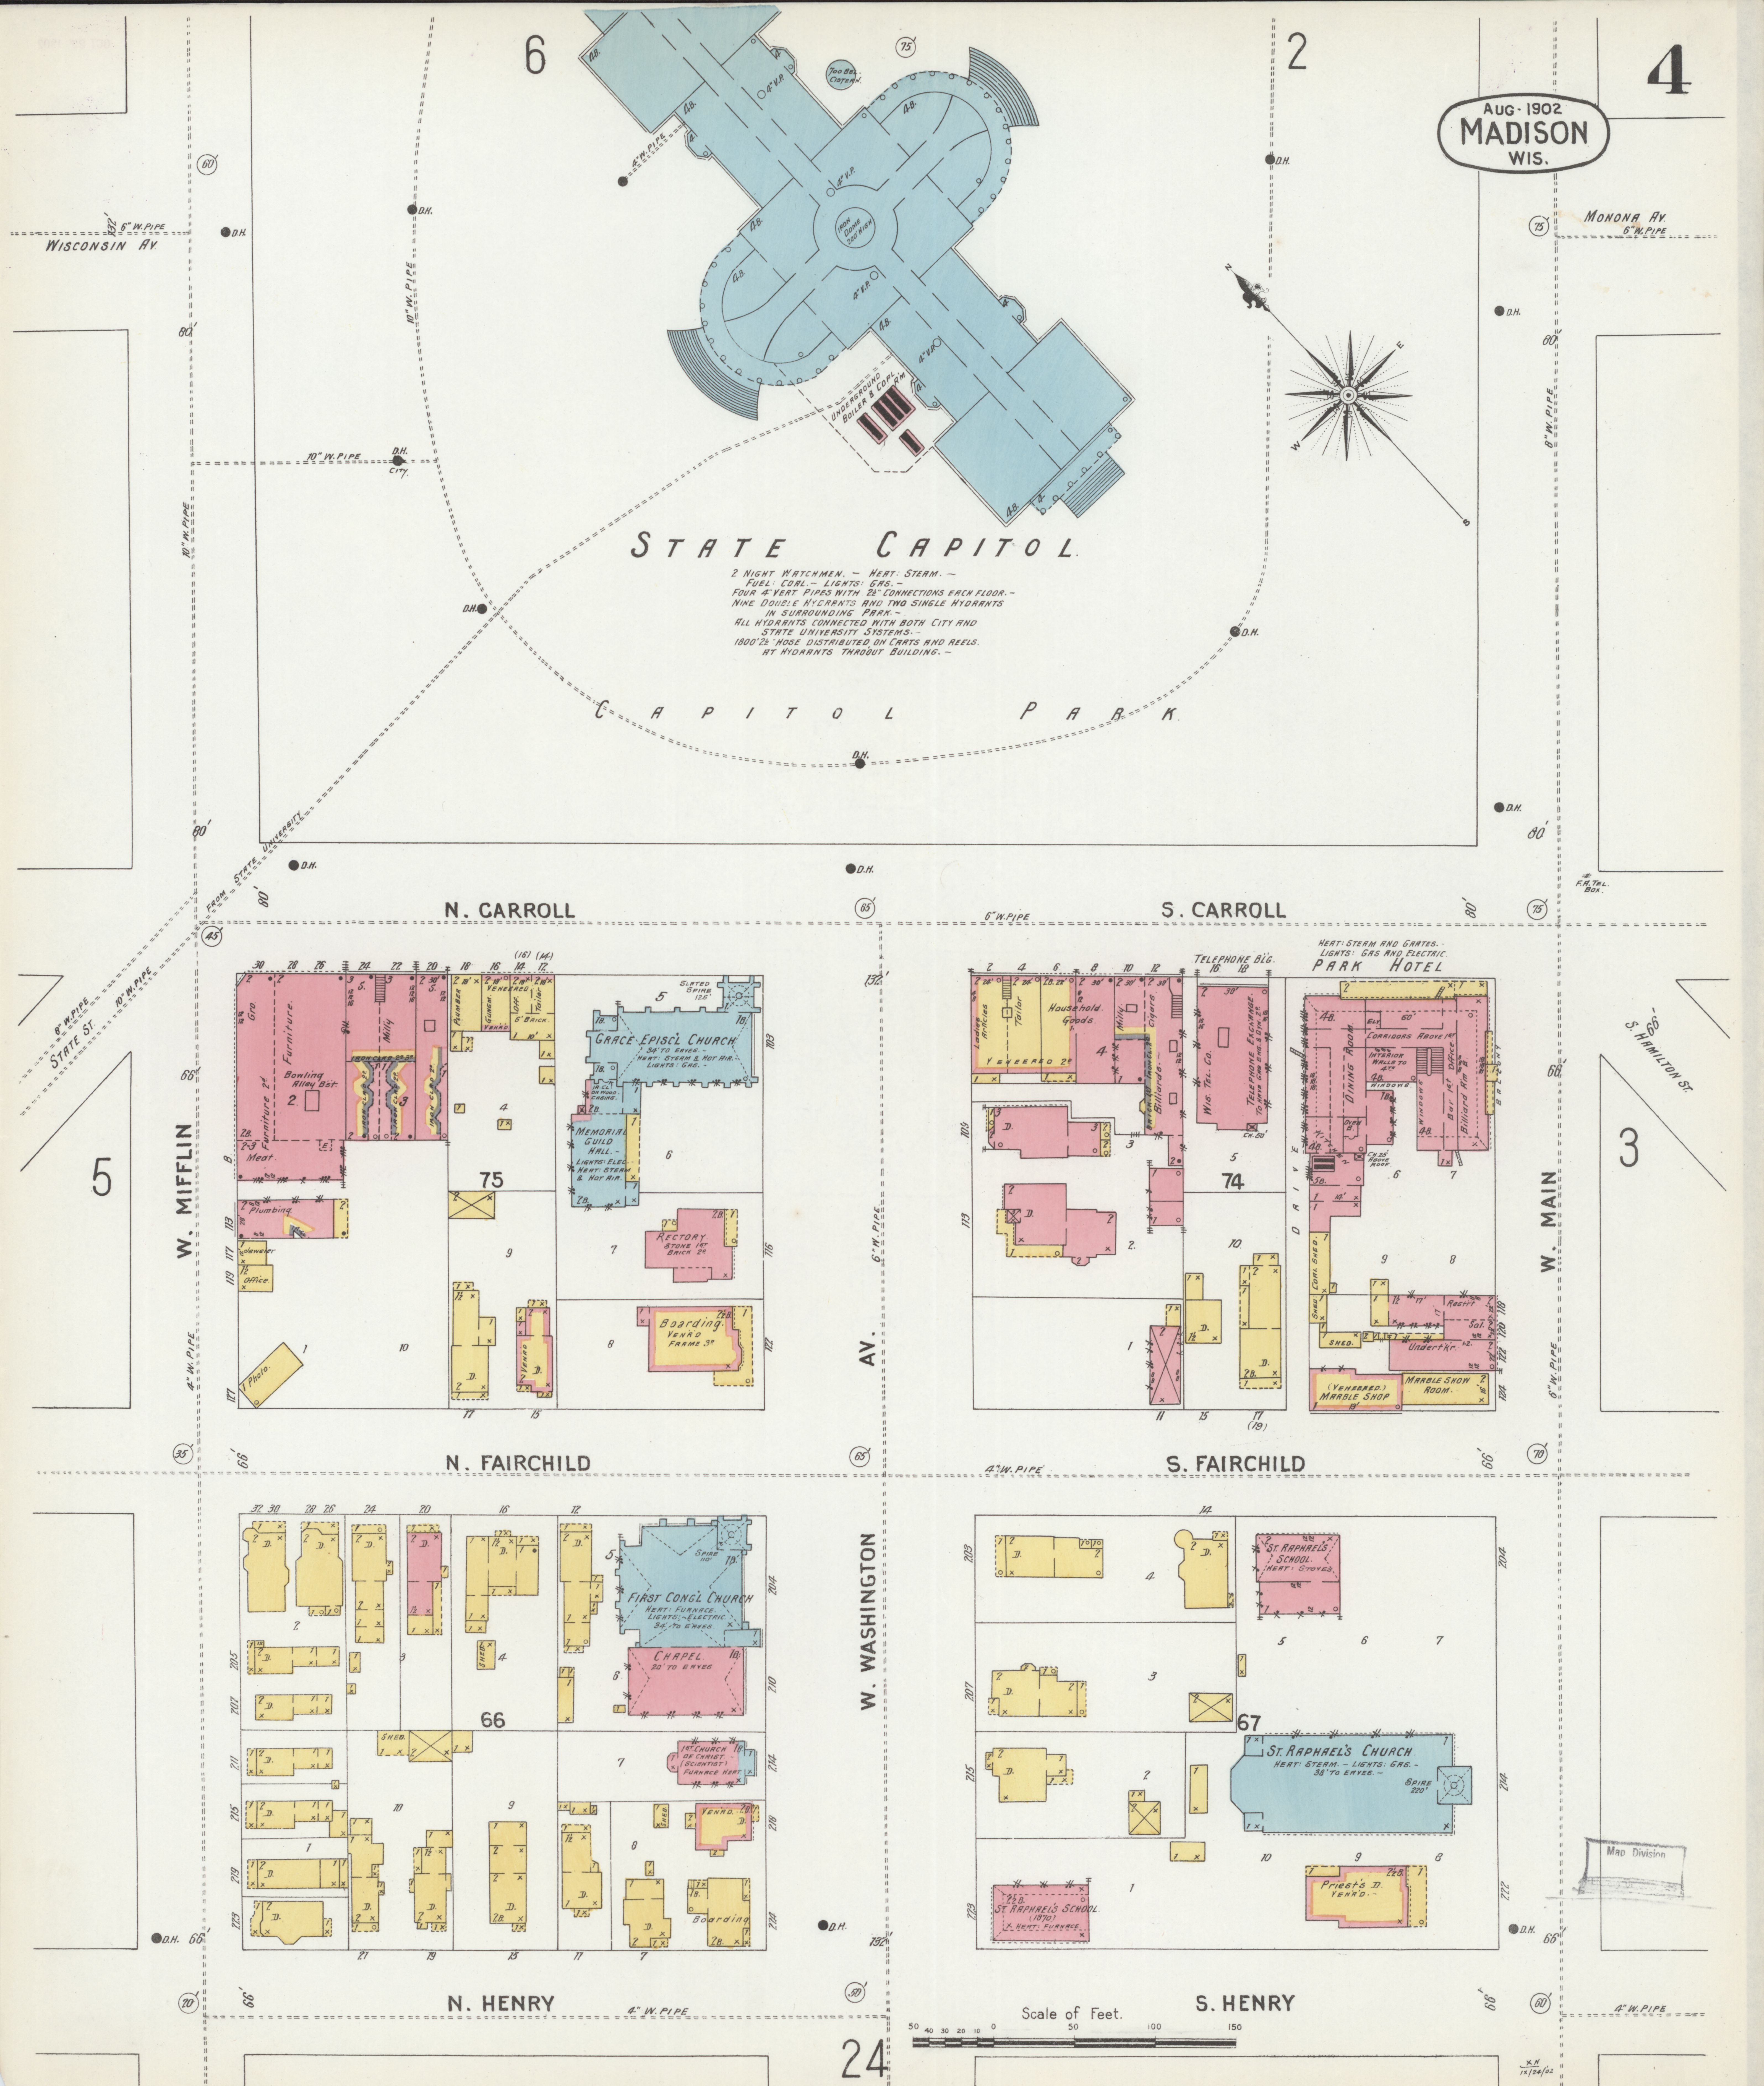 File:Sanborn Fire Insurance Map from Madison, Dane County ... on lodi county map, shelby county map, mcfarland school district map, ashland county map, wi county map, rock county map, city of middleton map, wisconsin map, saint croix county map, midwest county map, will county map, lane county map, iowa county map, columbia county map, brown county map, united states map, crawford county map, hardin county map, hamilton county map, fennimore map,